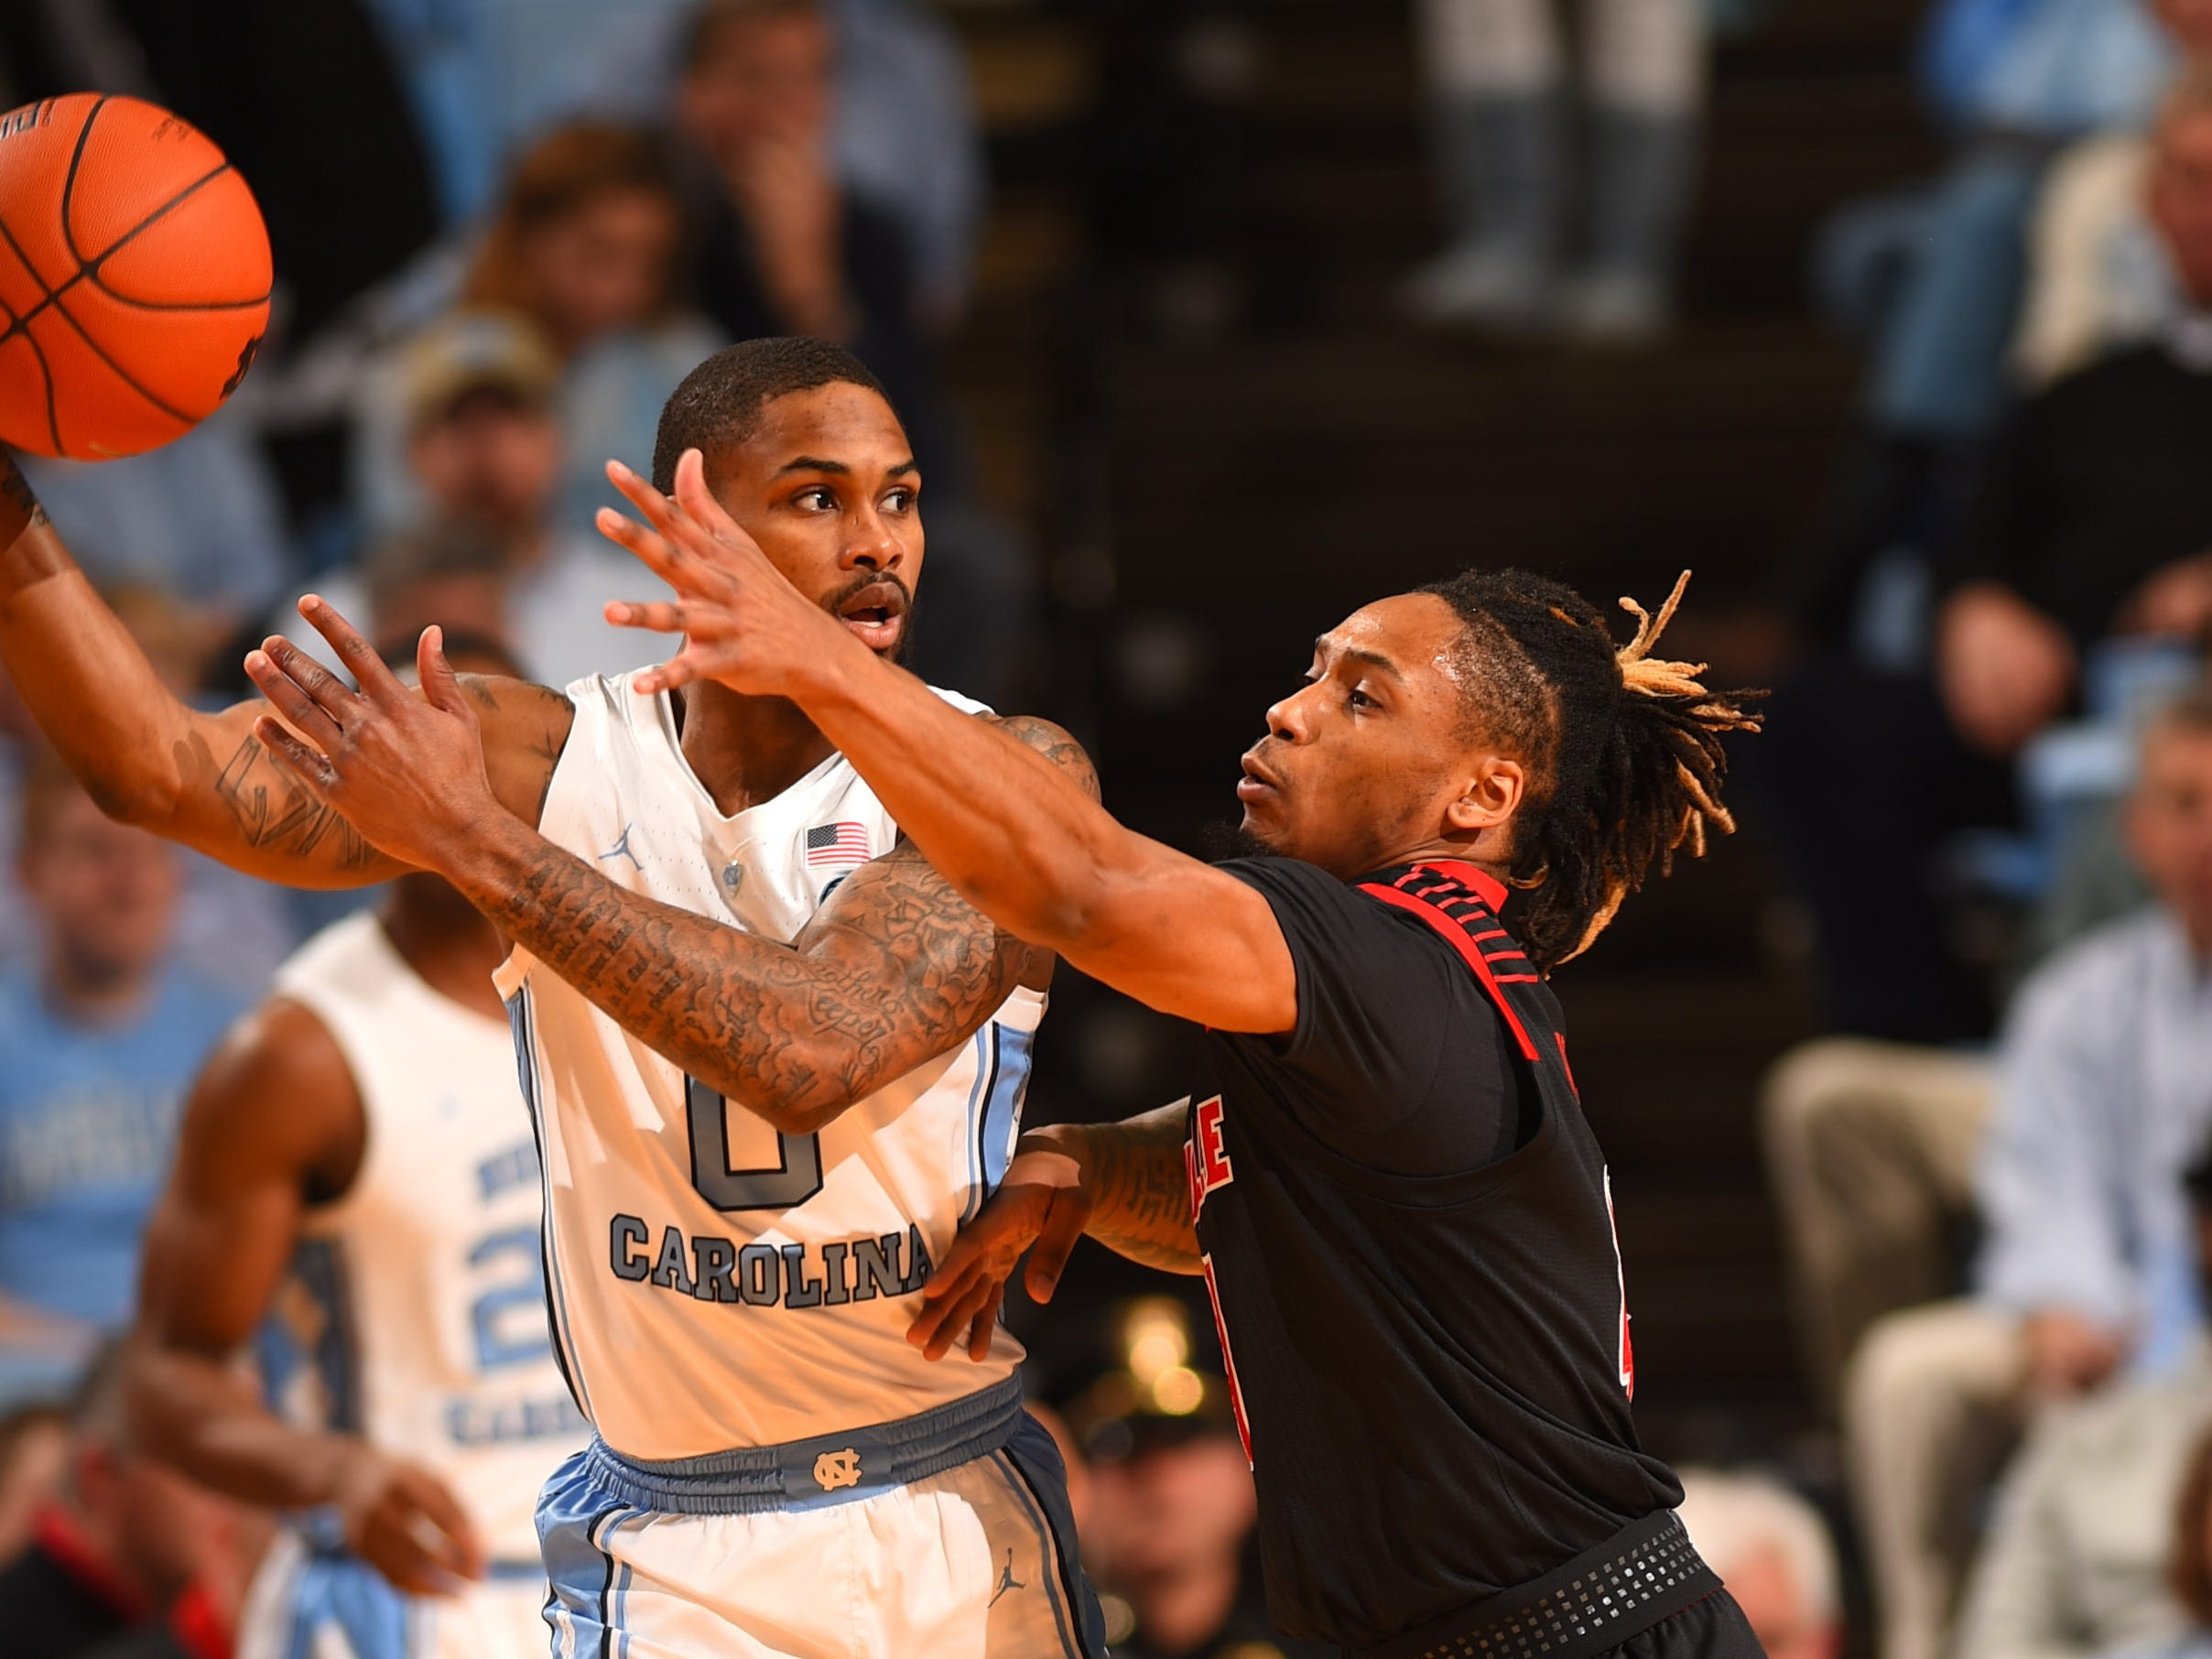 North Carolina Tar Heels guard Seventh Woods (0) with the ball as Louisville Cardinals guard Khwan Fore (4) defends in the first half at Dean E. Smith Center in Chapel Hill, North Carolina, on Saturday, Jan. 12, 2019.